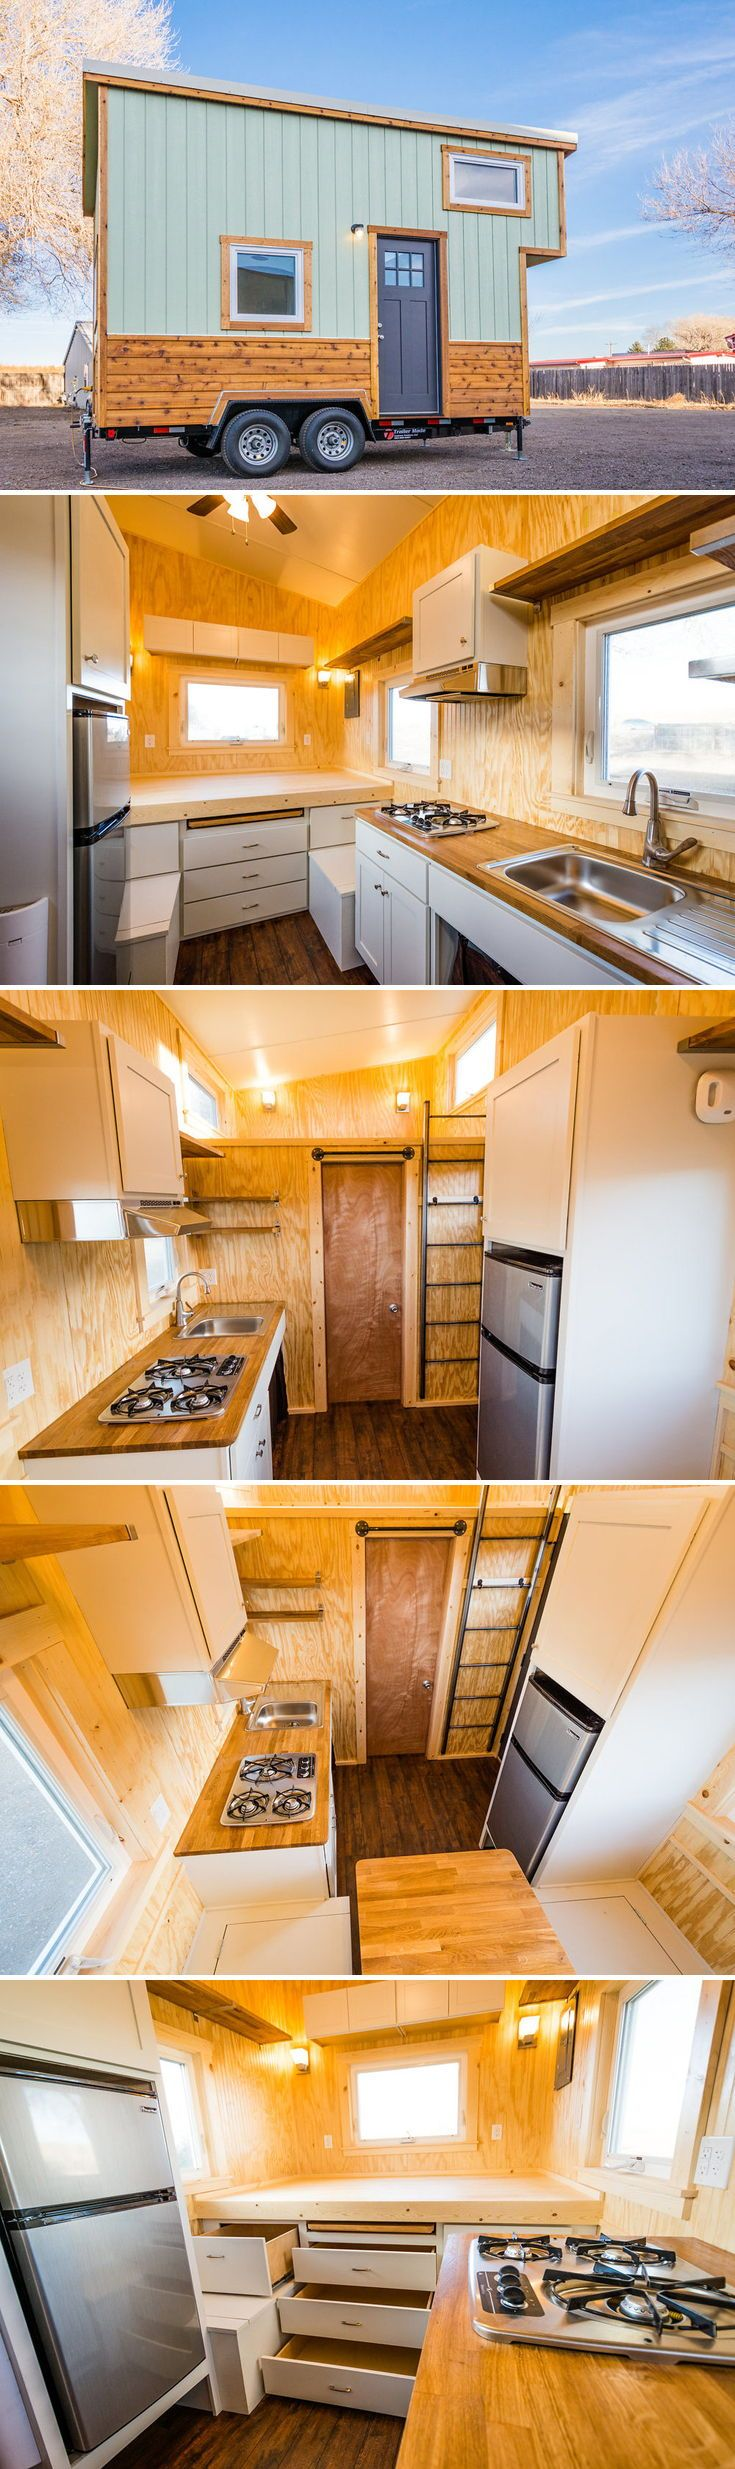 A 16′ custom tiny house built by Fort Collins-based MitchCraft Tiny Homes. The tiny house features a main level sleeping platform and an additional sleeping loft with ladder access.